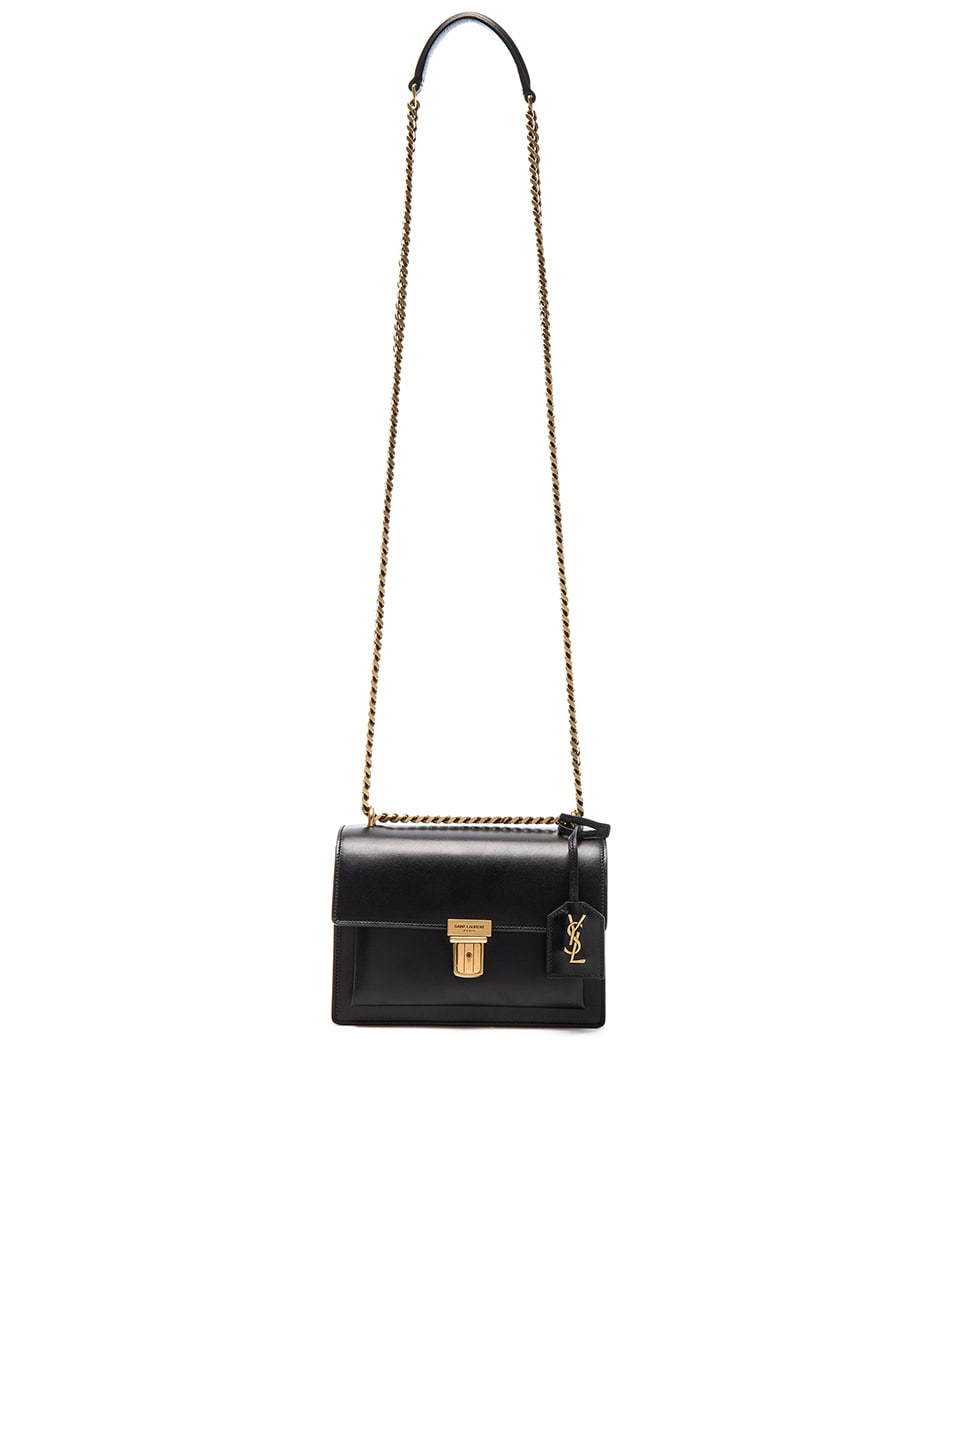 a07f6c1e7305 Image 5 of Saint Laurent Small Chain High School Bag in Black